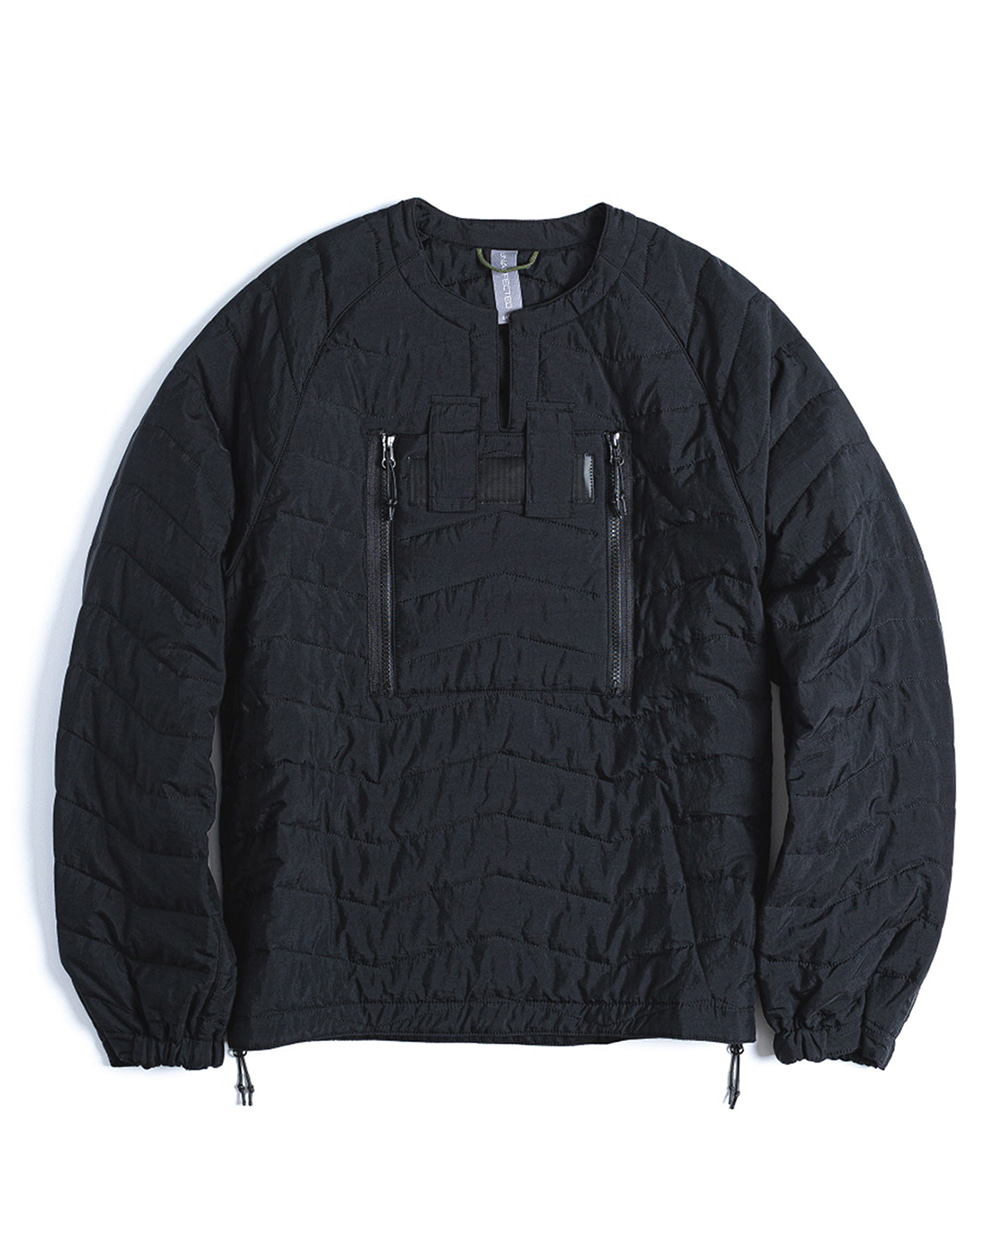 언어펙티드 QUILTED PULLOVER JUMPER (Black)